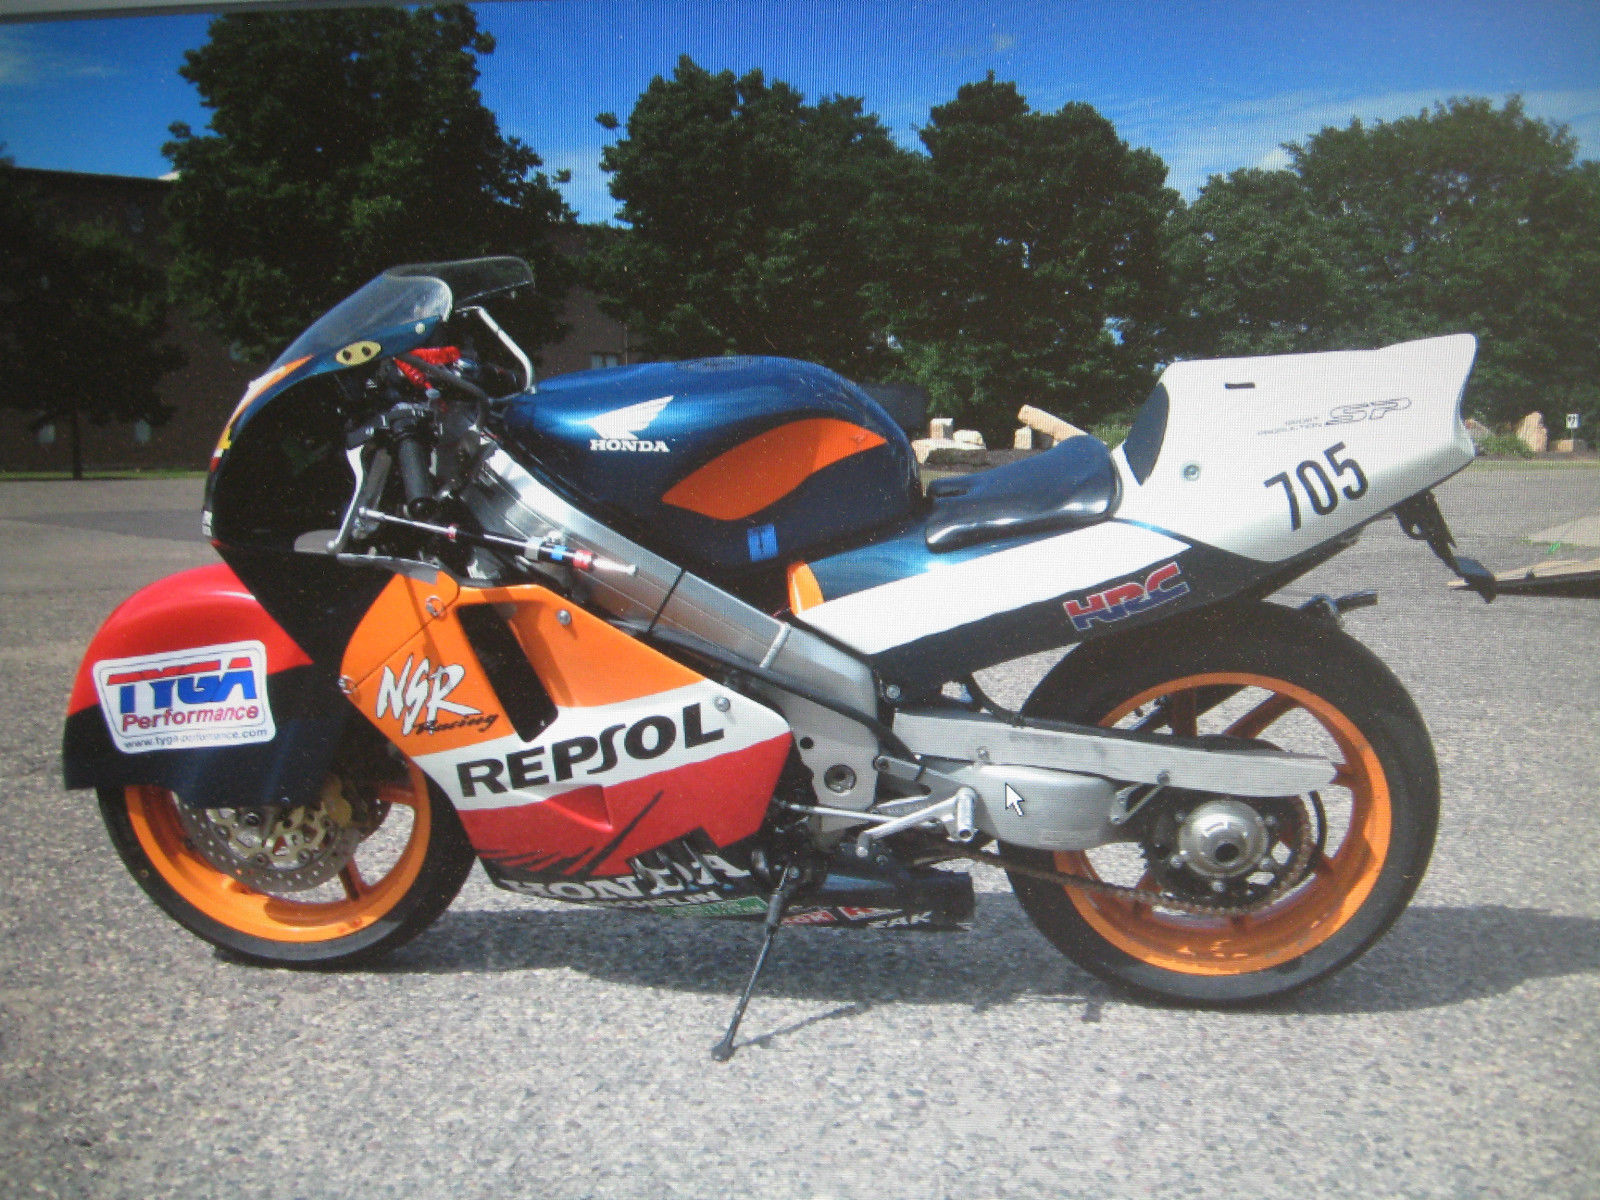 nsr250 archives page 3 of 21 rare sportbikes for sale rh raresportbikesforsale com Honda NSR250R Honda NS250R